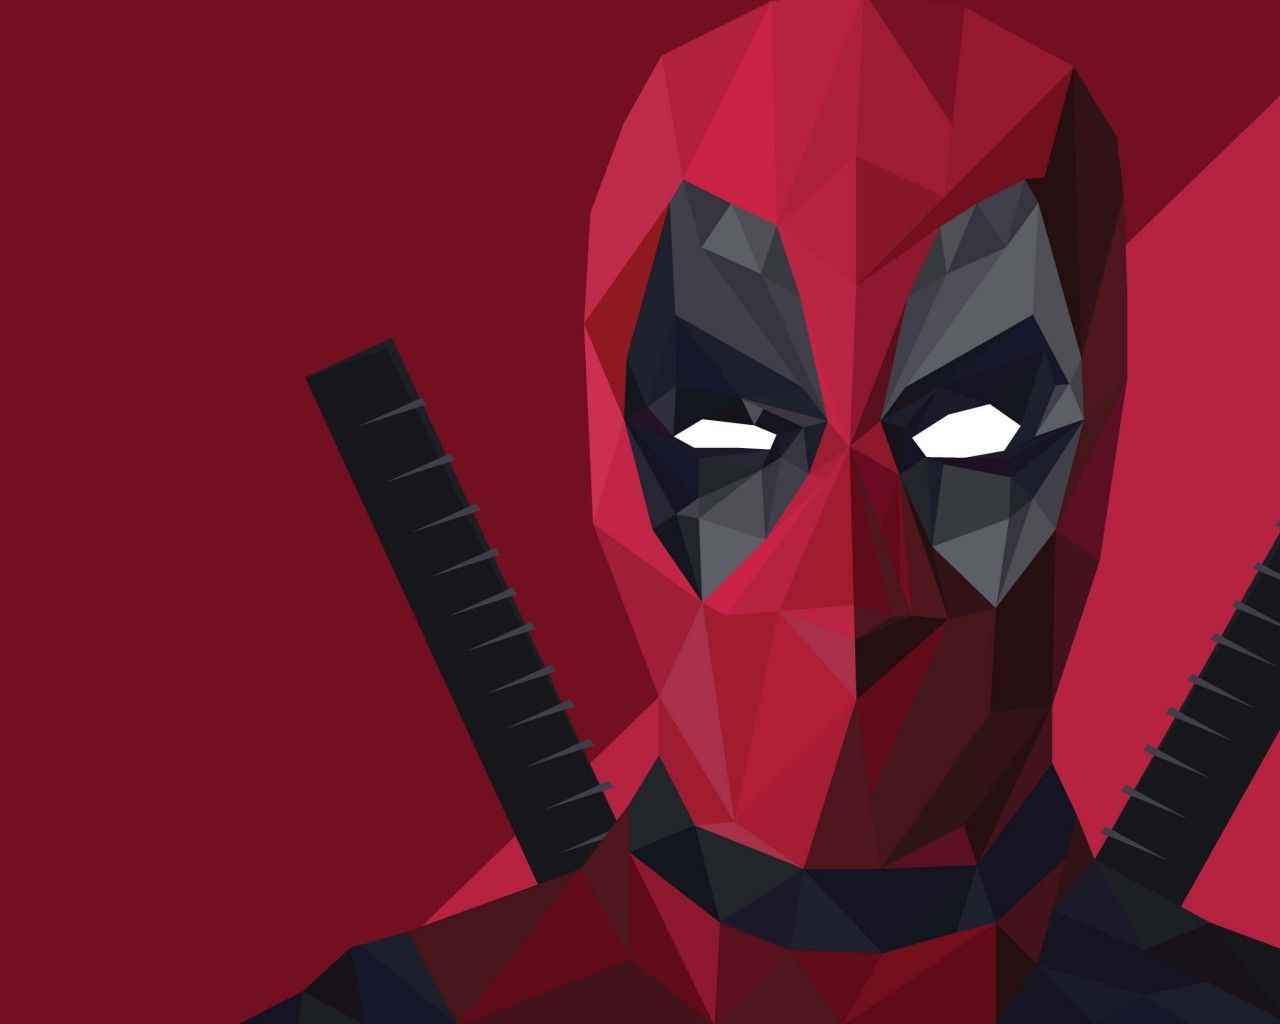 Deadpool Android Wallpapers Top Free Deadpool Android Backgrounds Wallpaperaccess